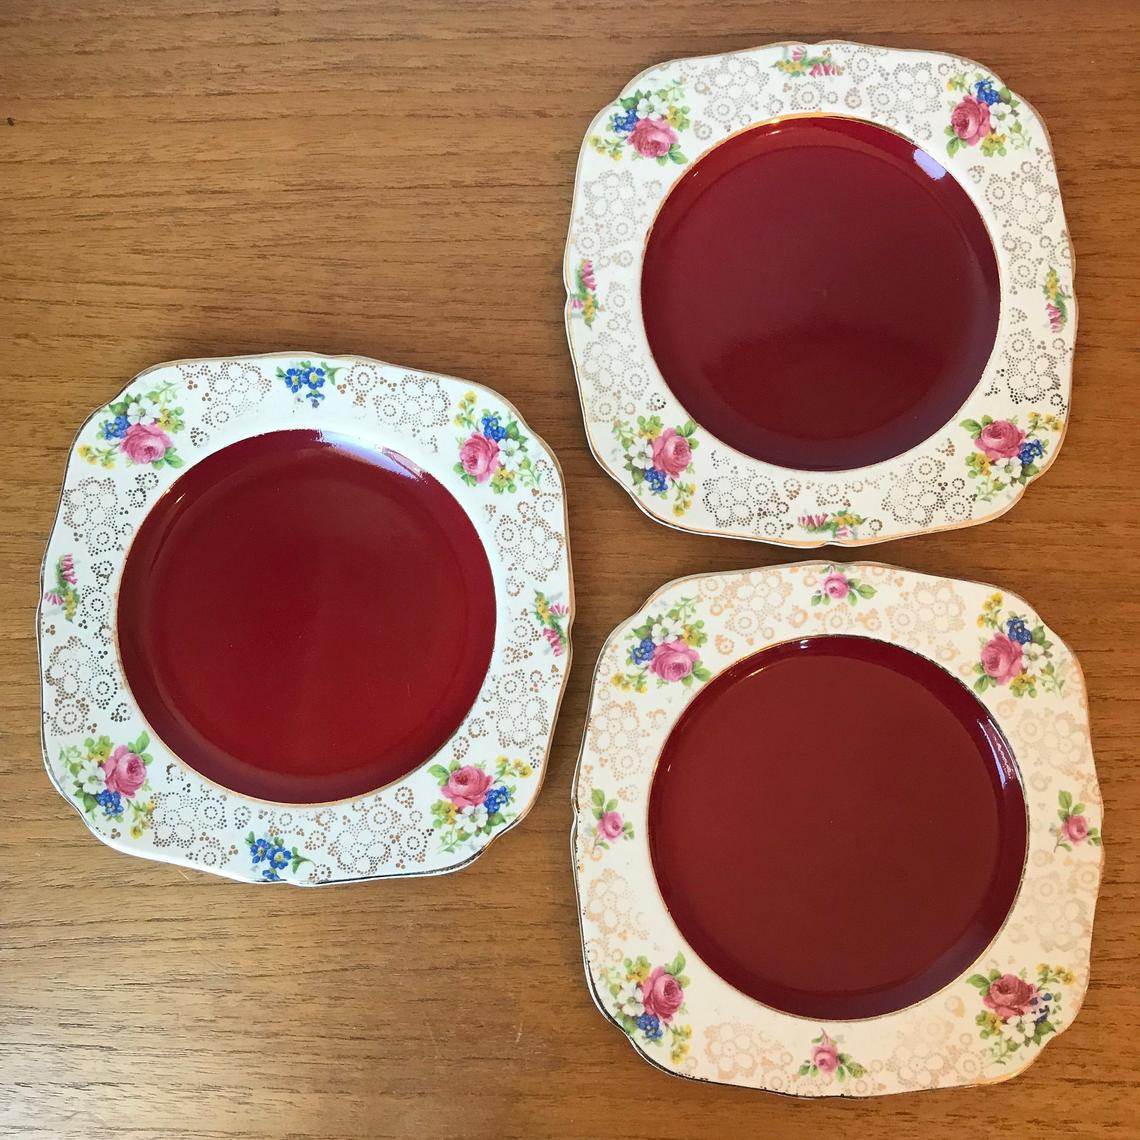 H & K Tunstall Plates, Floral Gold Chintz Plates, Red Plates, Vintage Earthenware